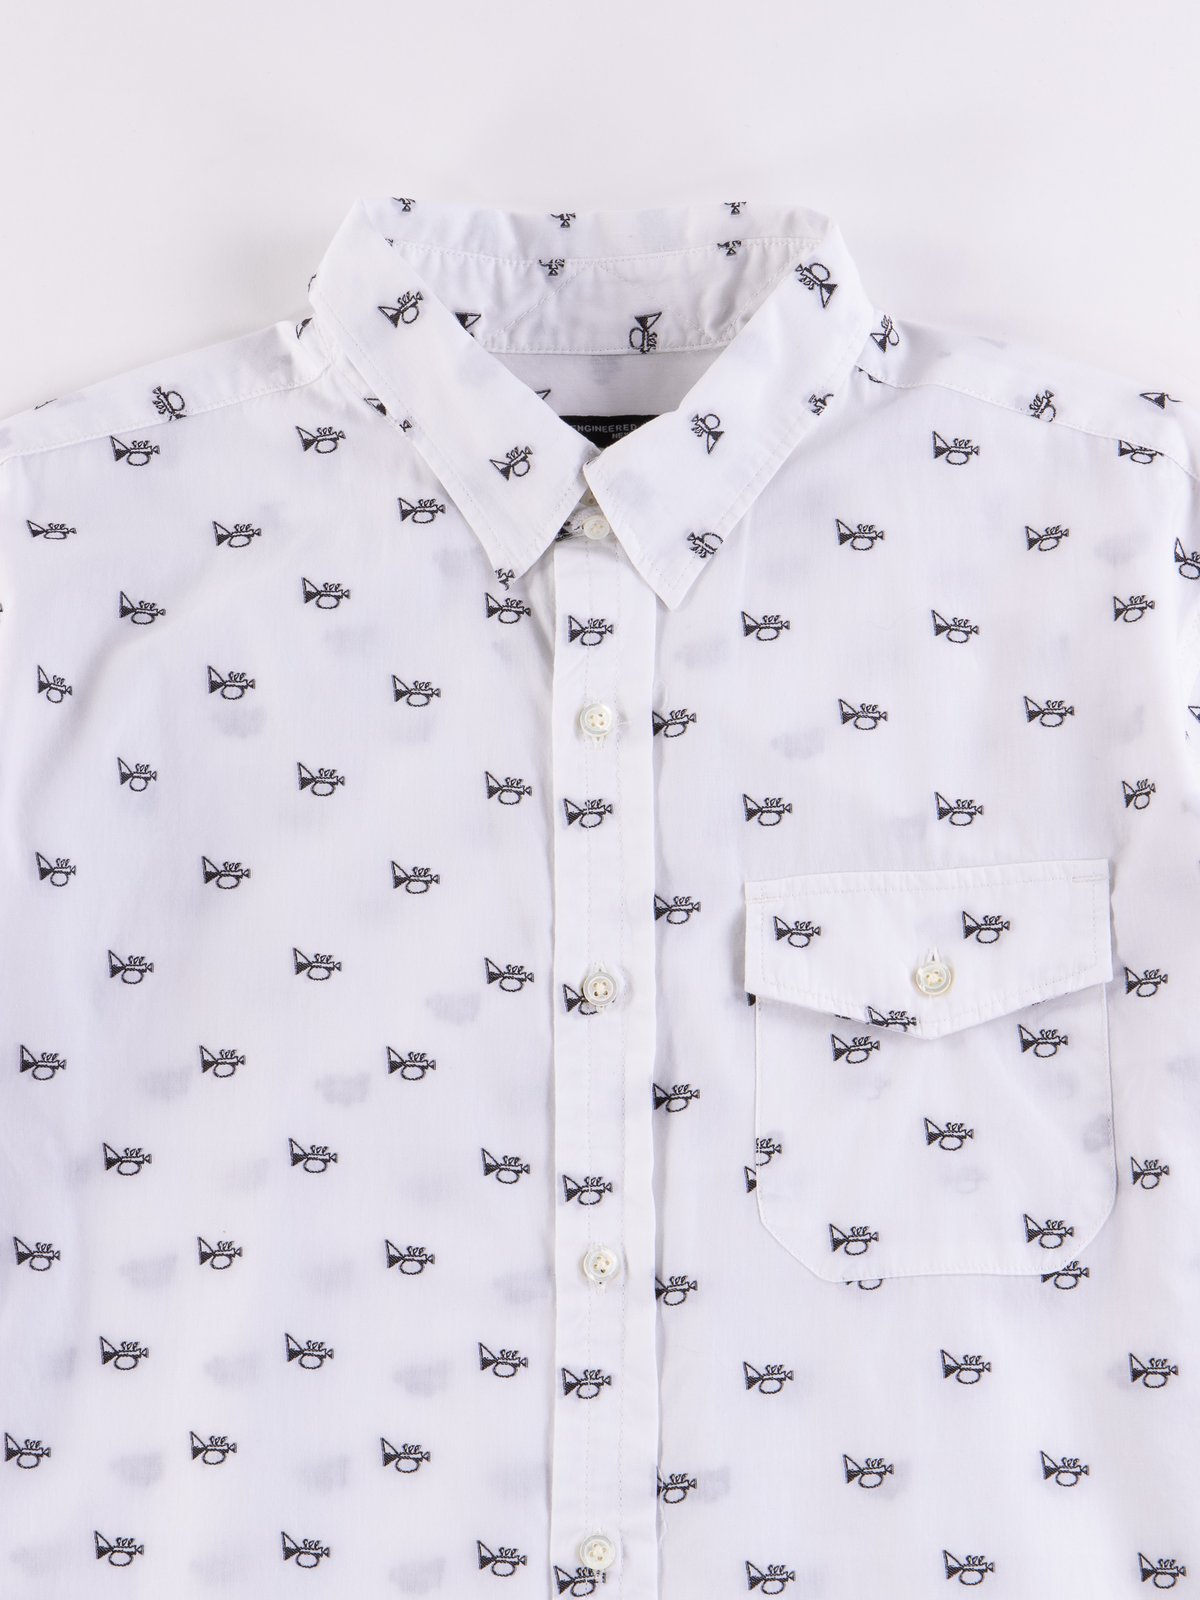 White Trumpet Embroidery Broadcloth Tab Collar Shirt - Image 3